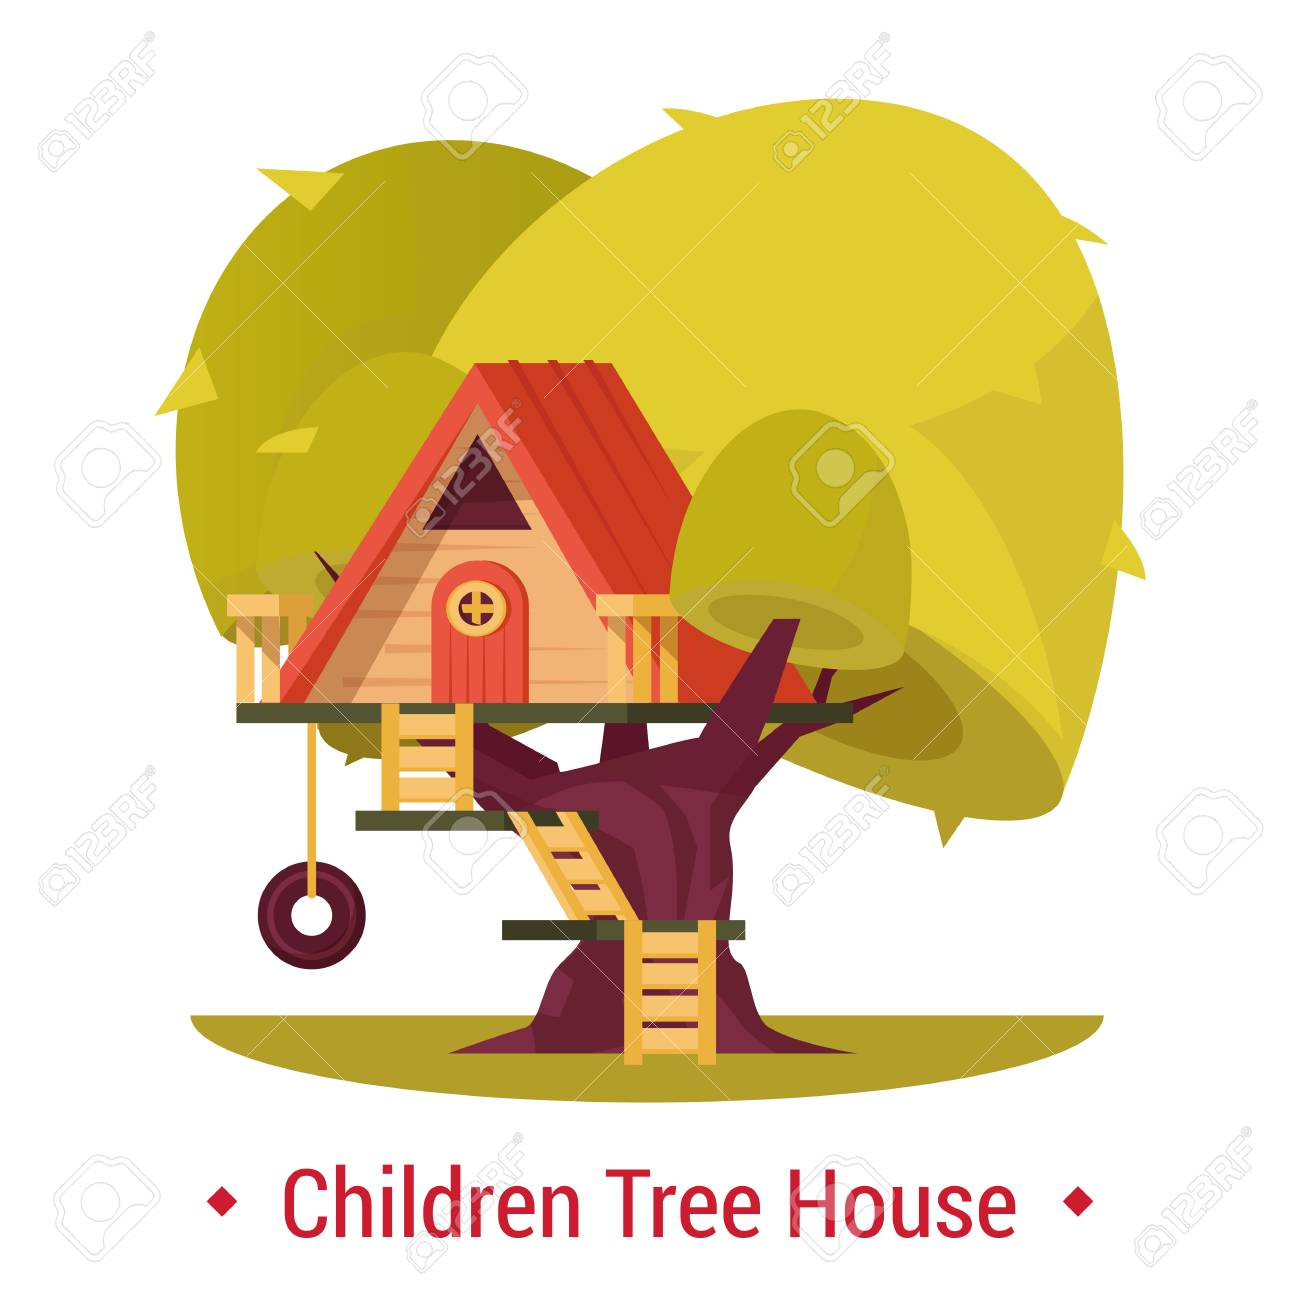 Playground Shelter For Children Tree House With Fence For Kids Royalty Free Cliparts Vectors And Stock Illustration Image 104547302